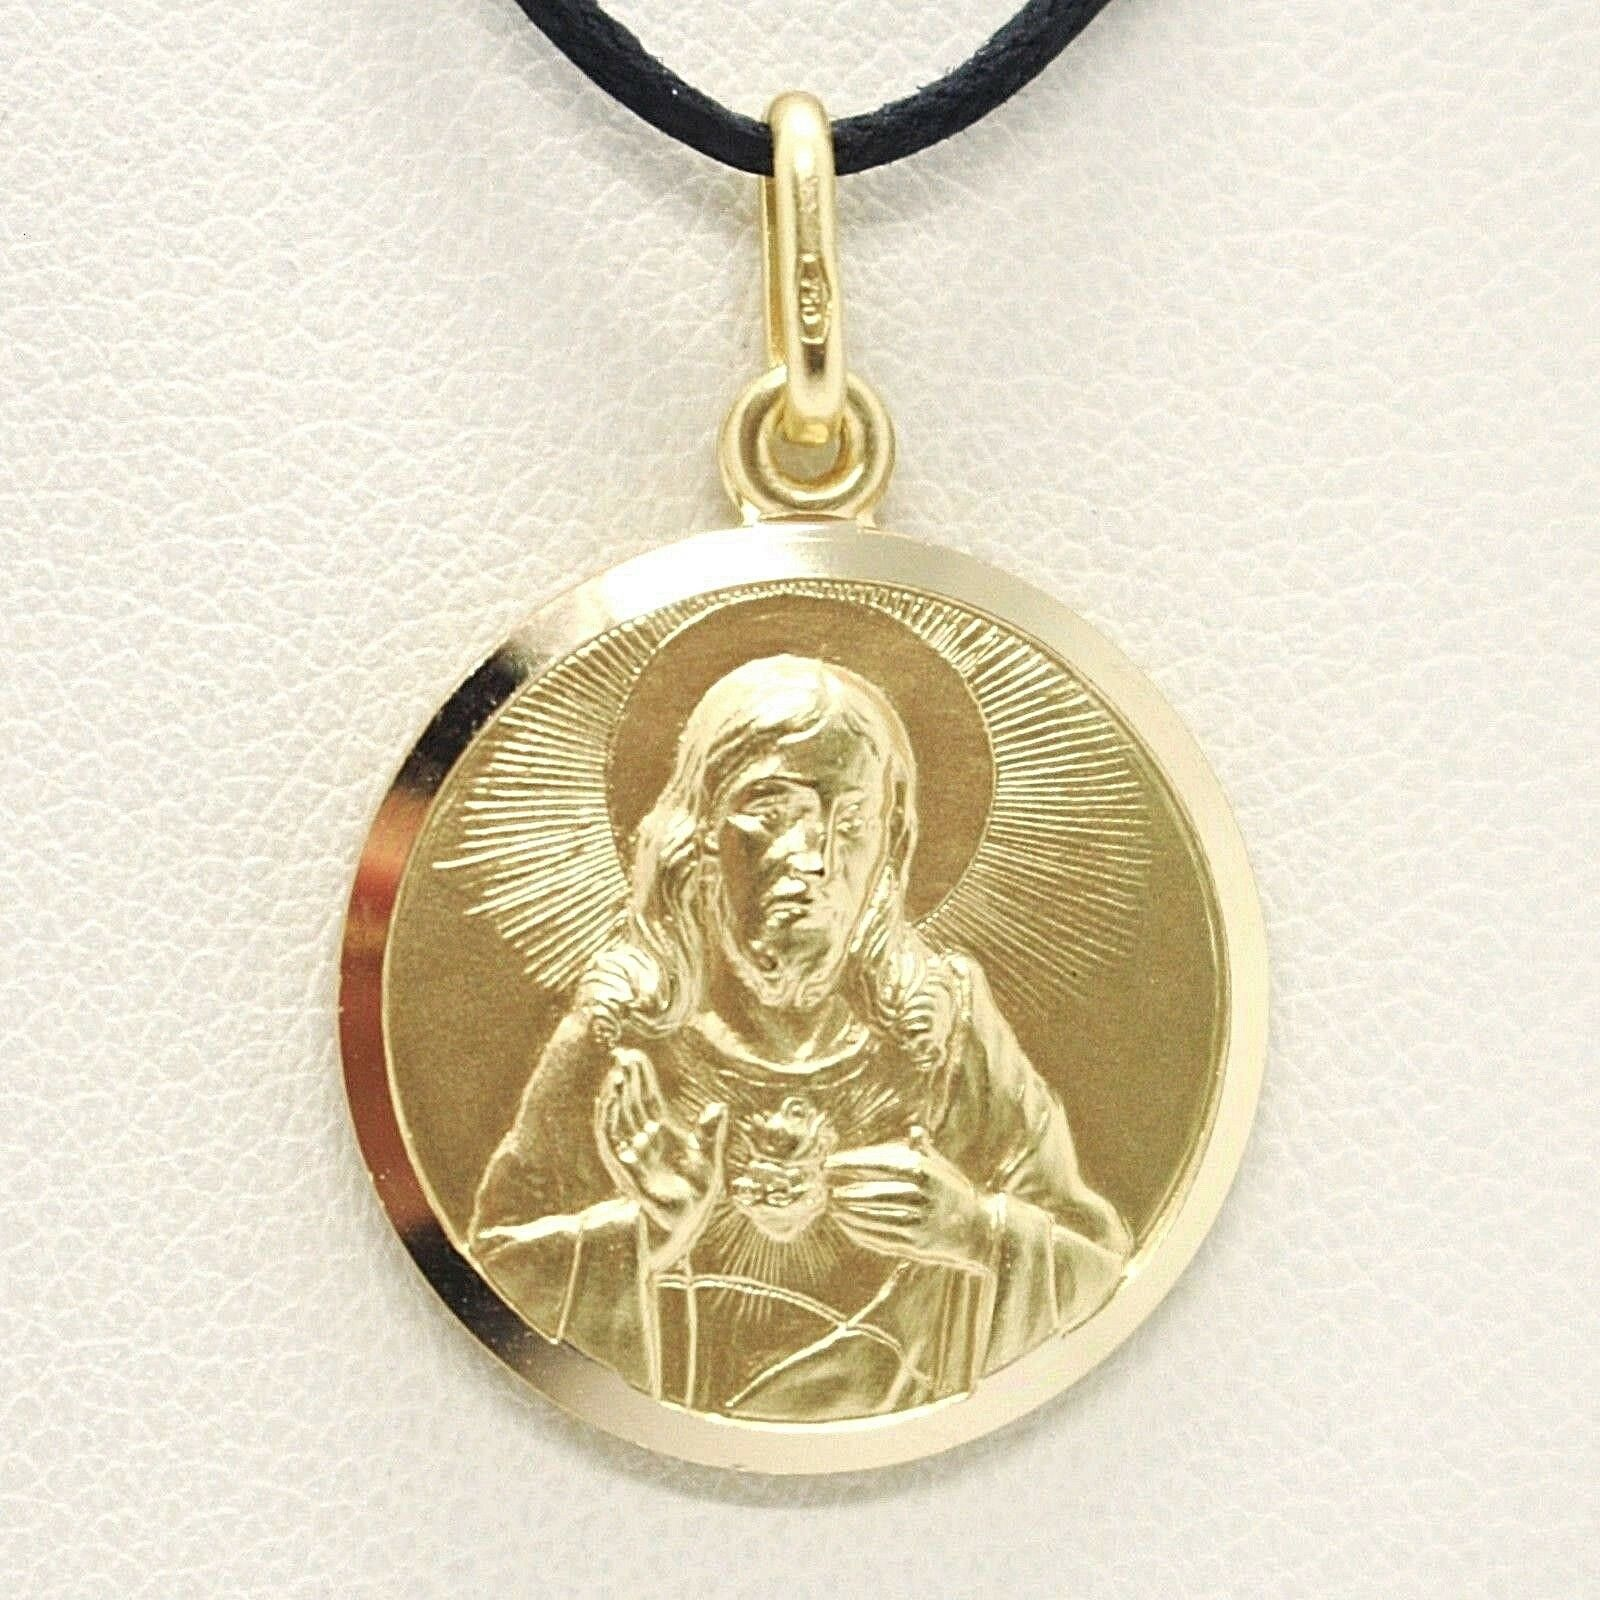 SOLID 18K YELLOW GOLD SACRED HEART OF JESUS 15 MM ROUND MEDAL, MADE IN ITALY